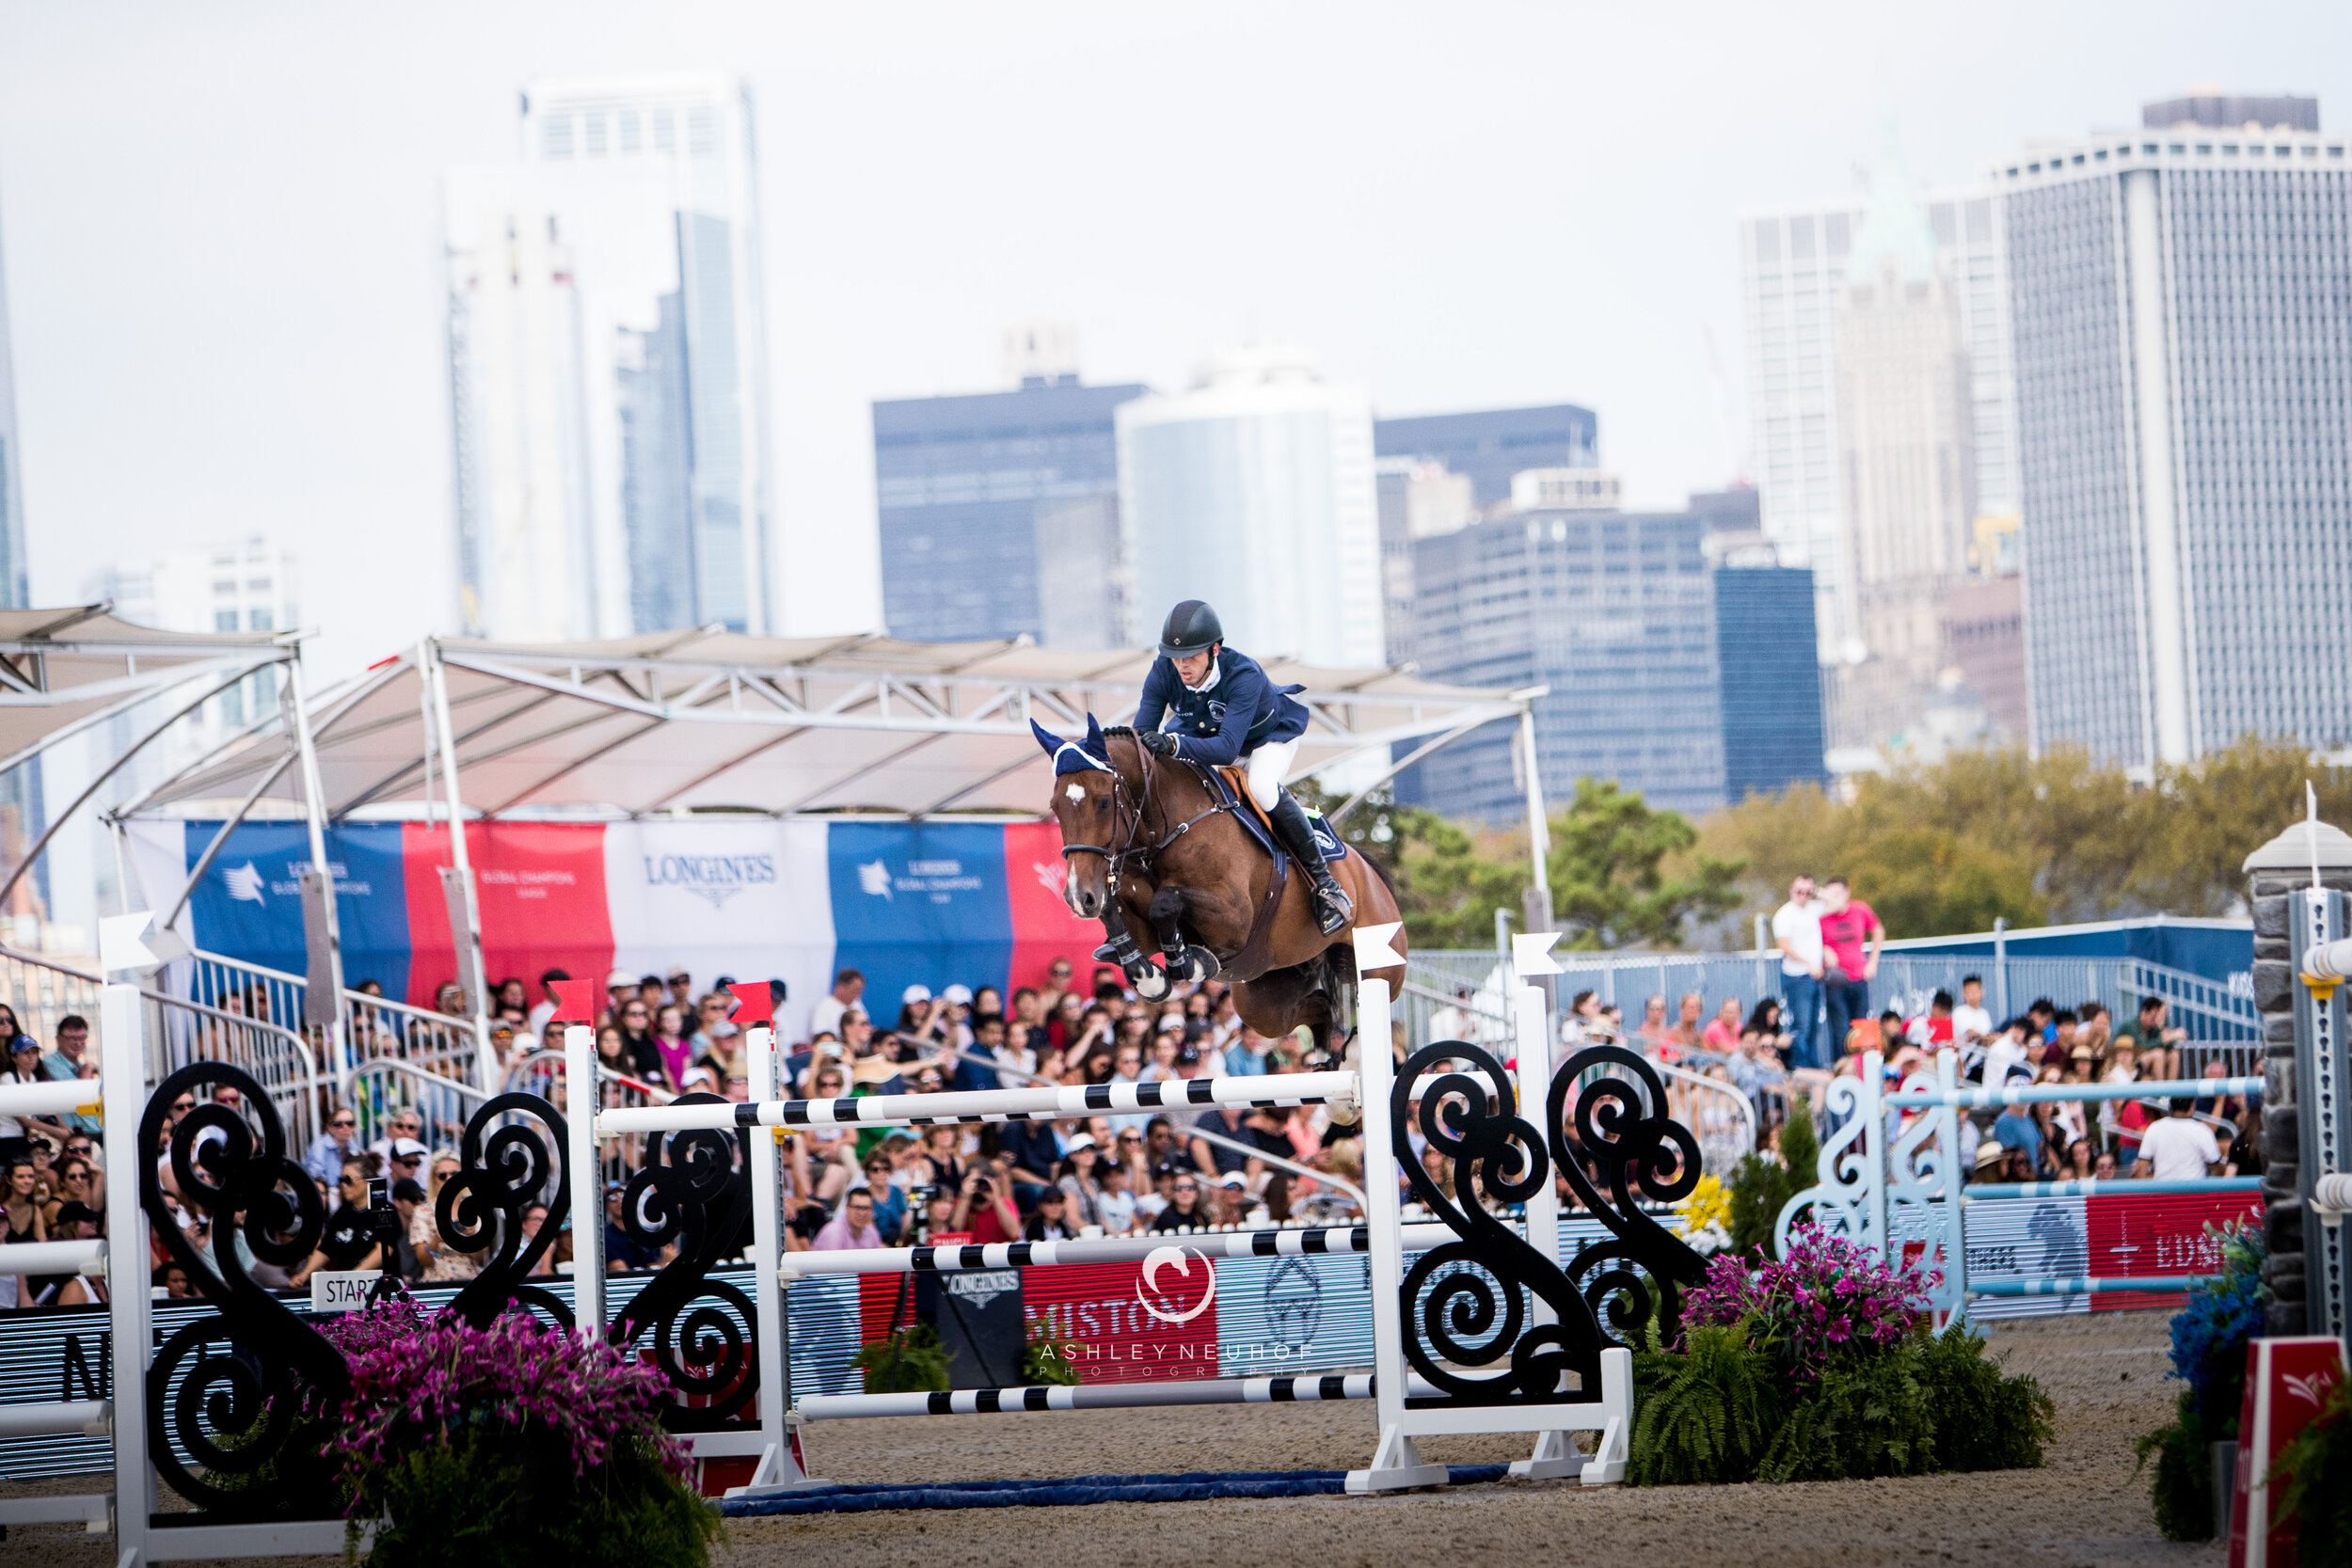 Harrie Smolders and Monaco at Global Champions League of New York 2019. Photo by Ashley Neuhof Photography.